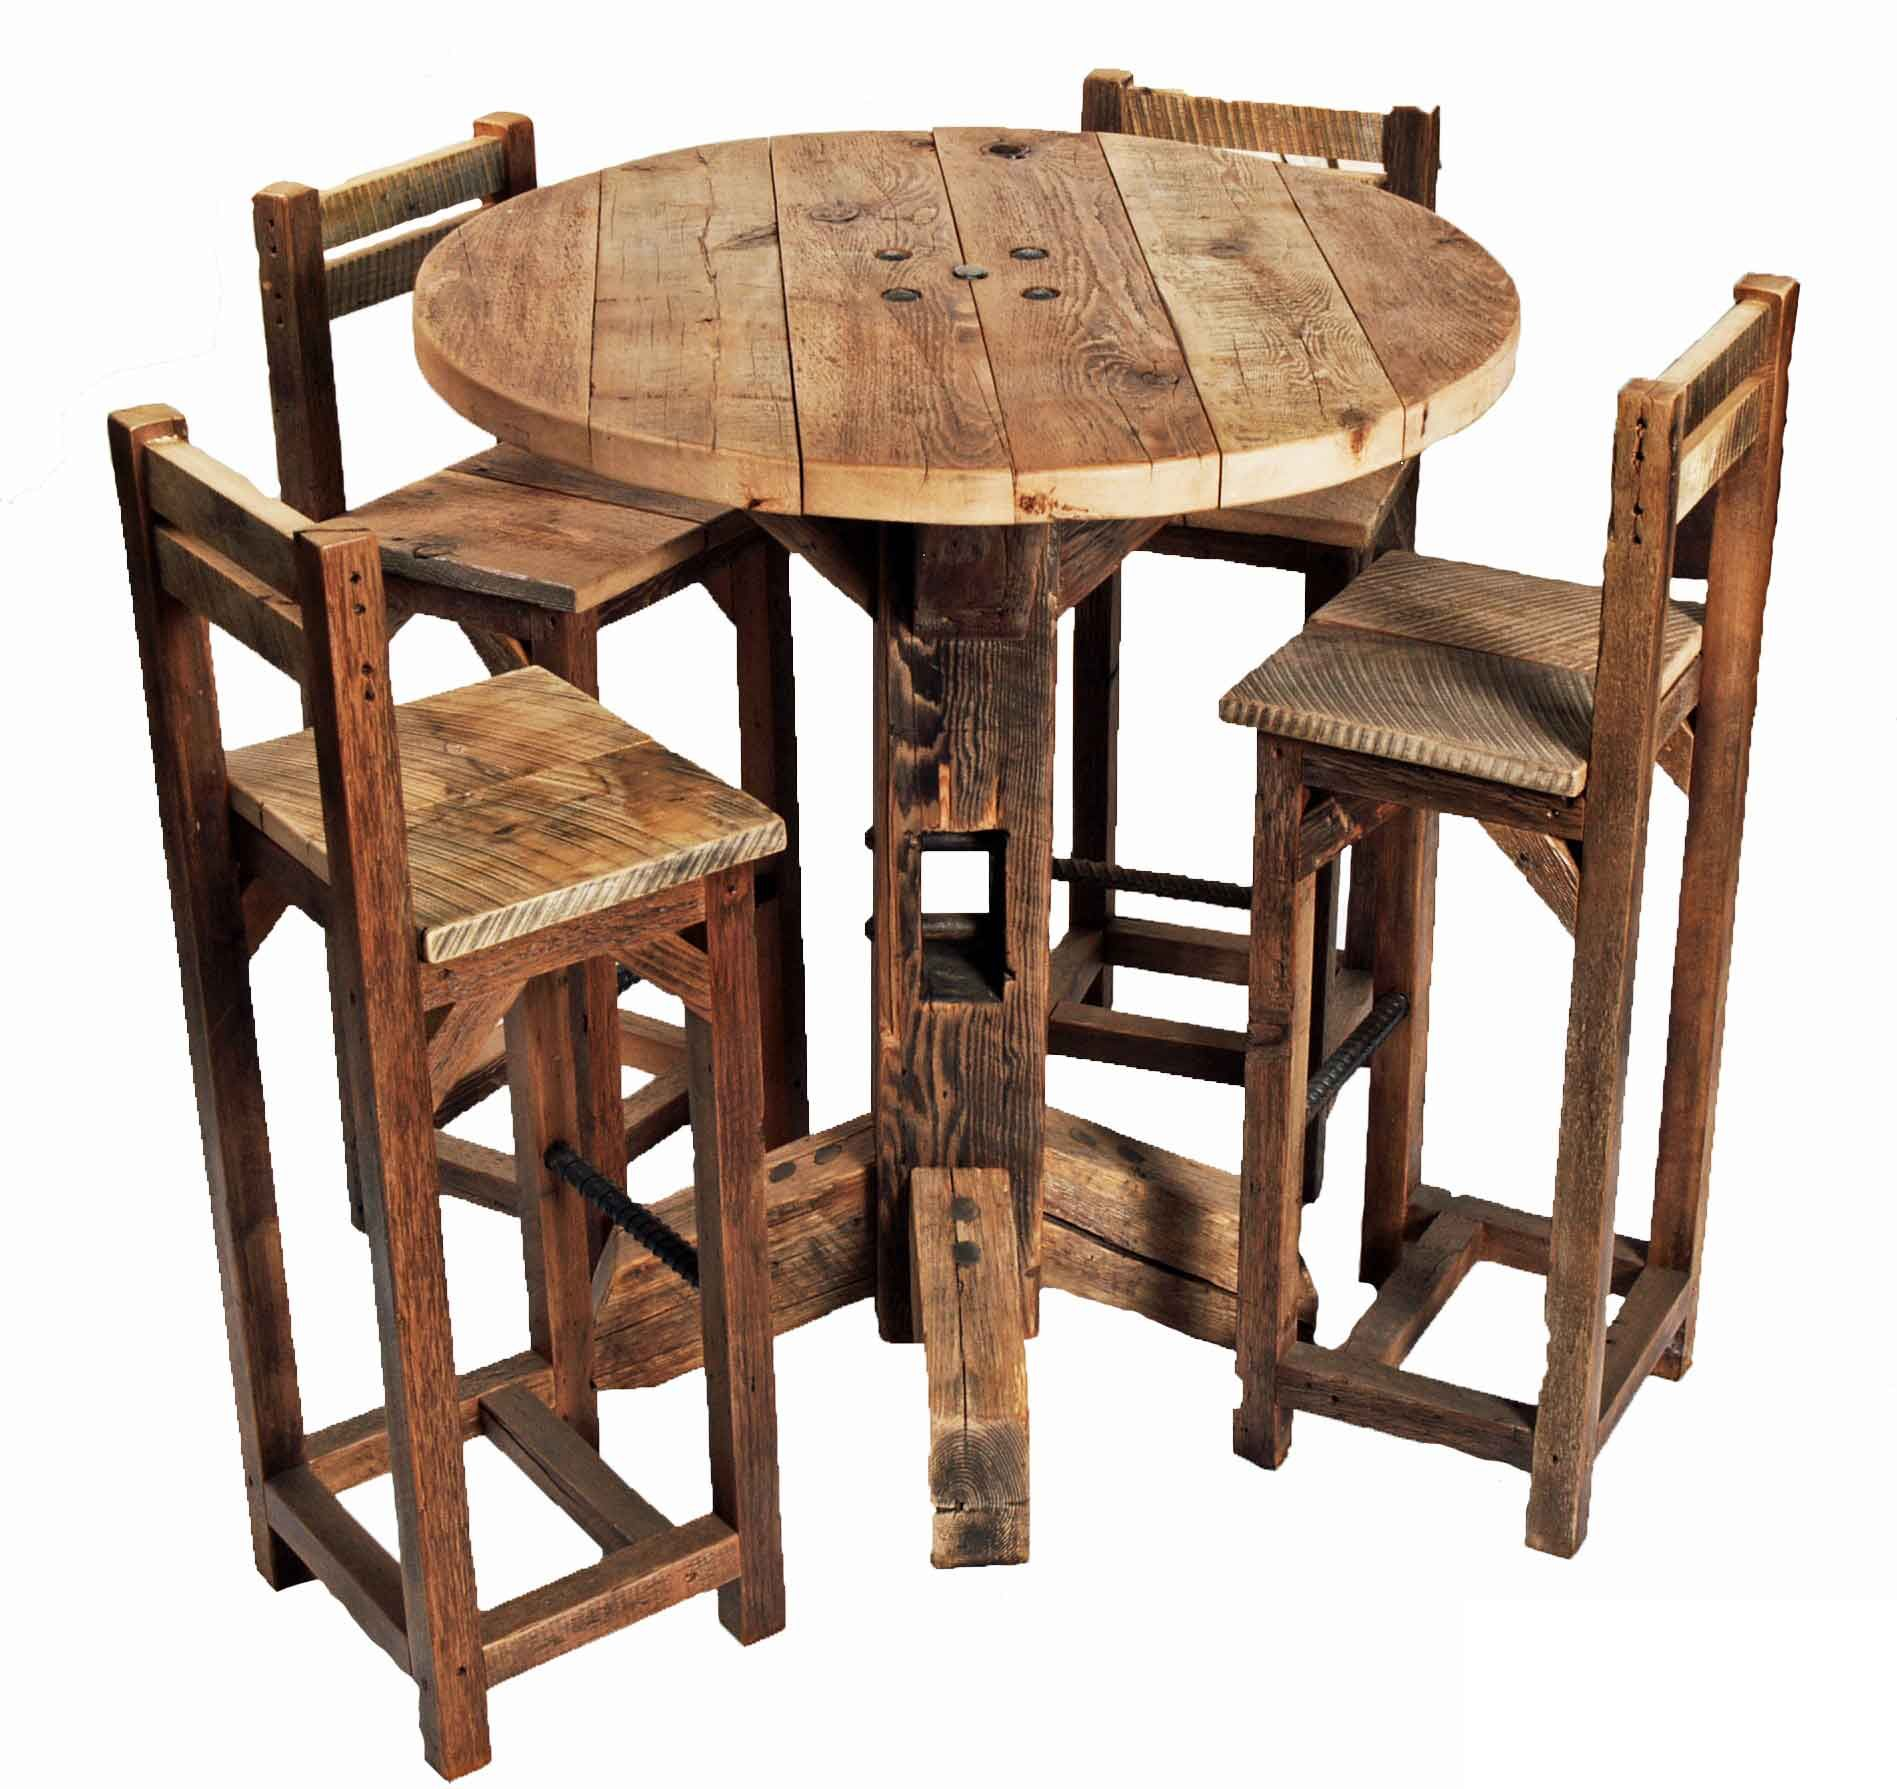 furniture, old rustic small high round top kitchen table and chair